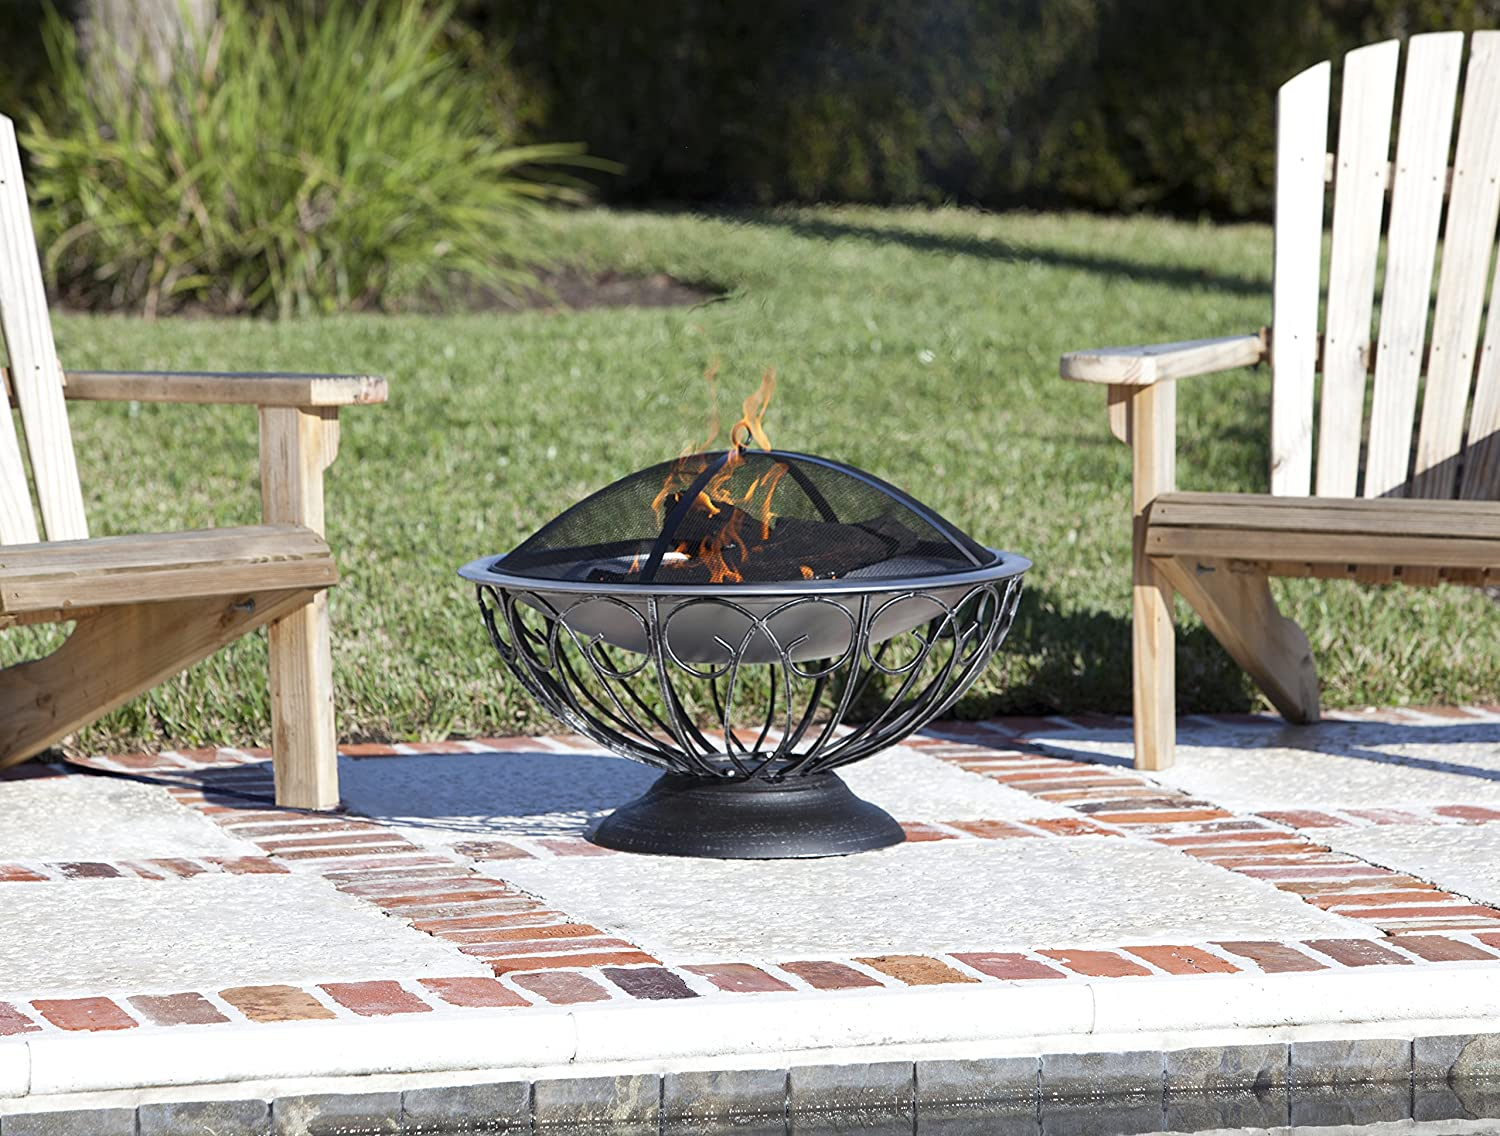 Amazon.com : Fire Sense Stainless Steel Urn Fire Pit : Outdoor Fireplaces :  Garden U0026 Outdoor